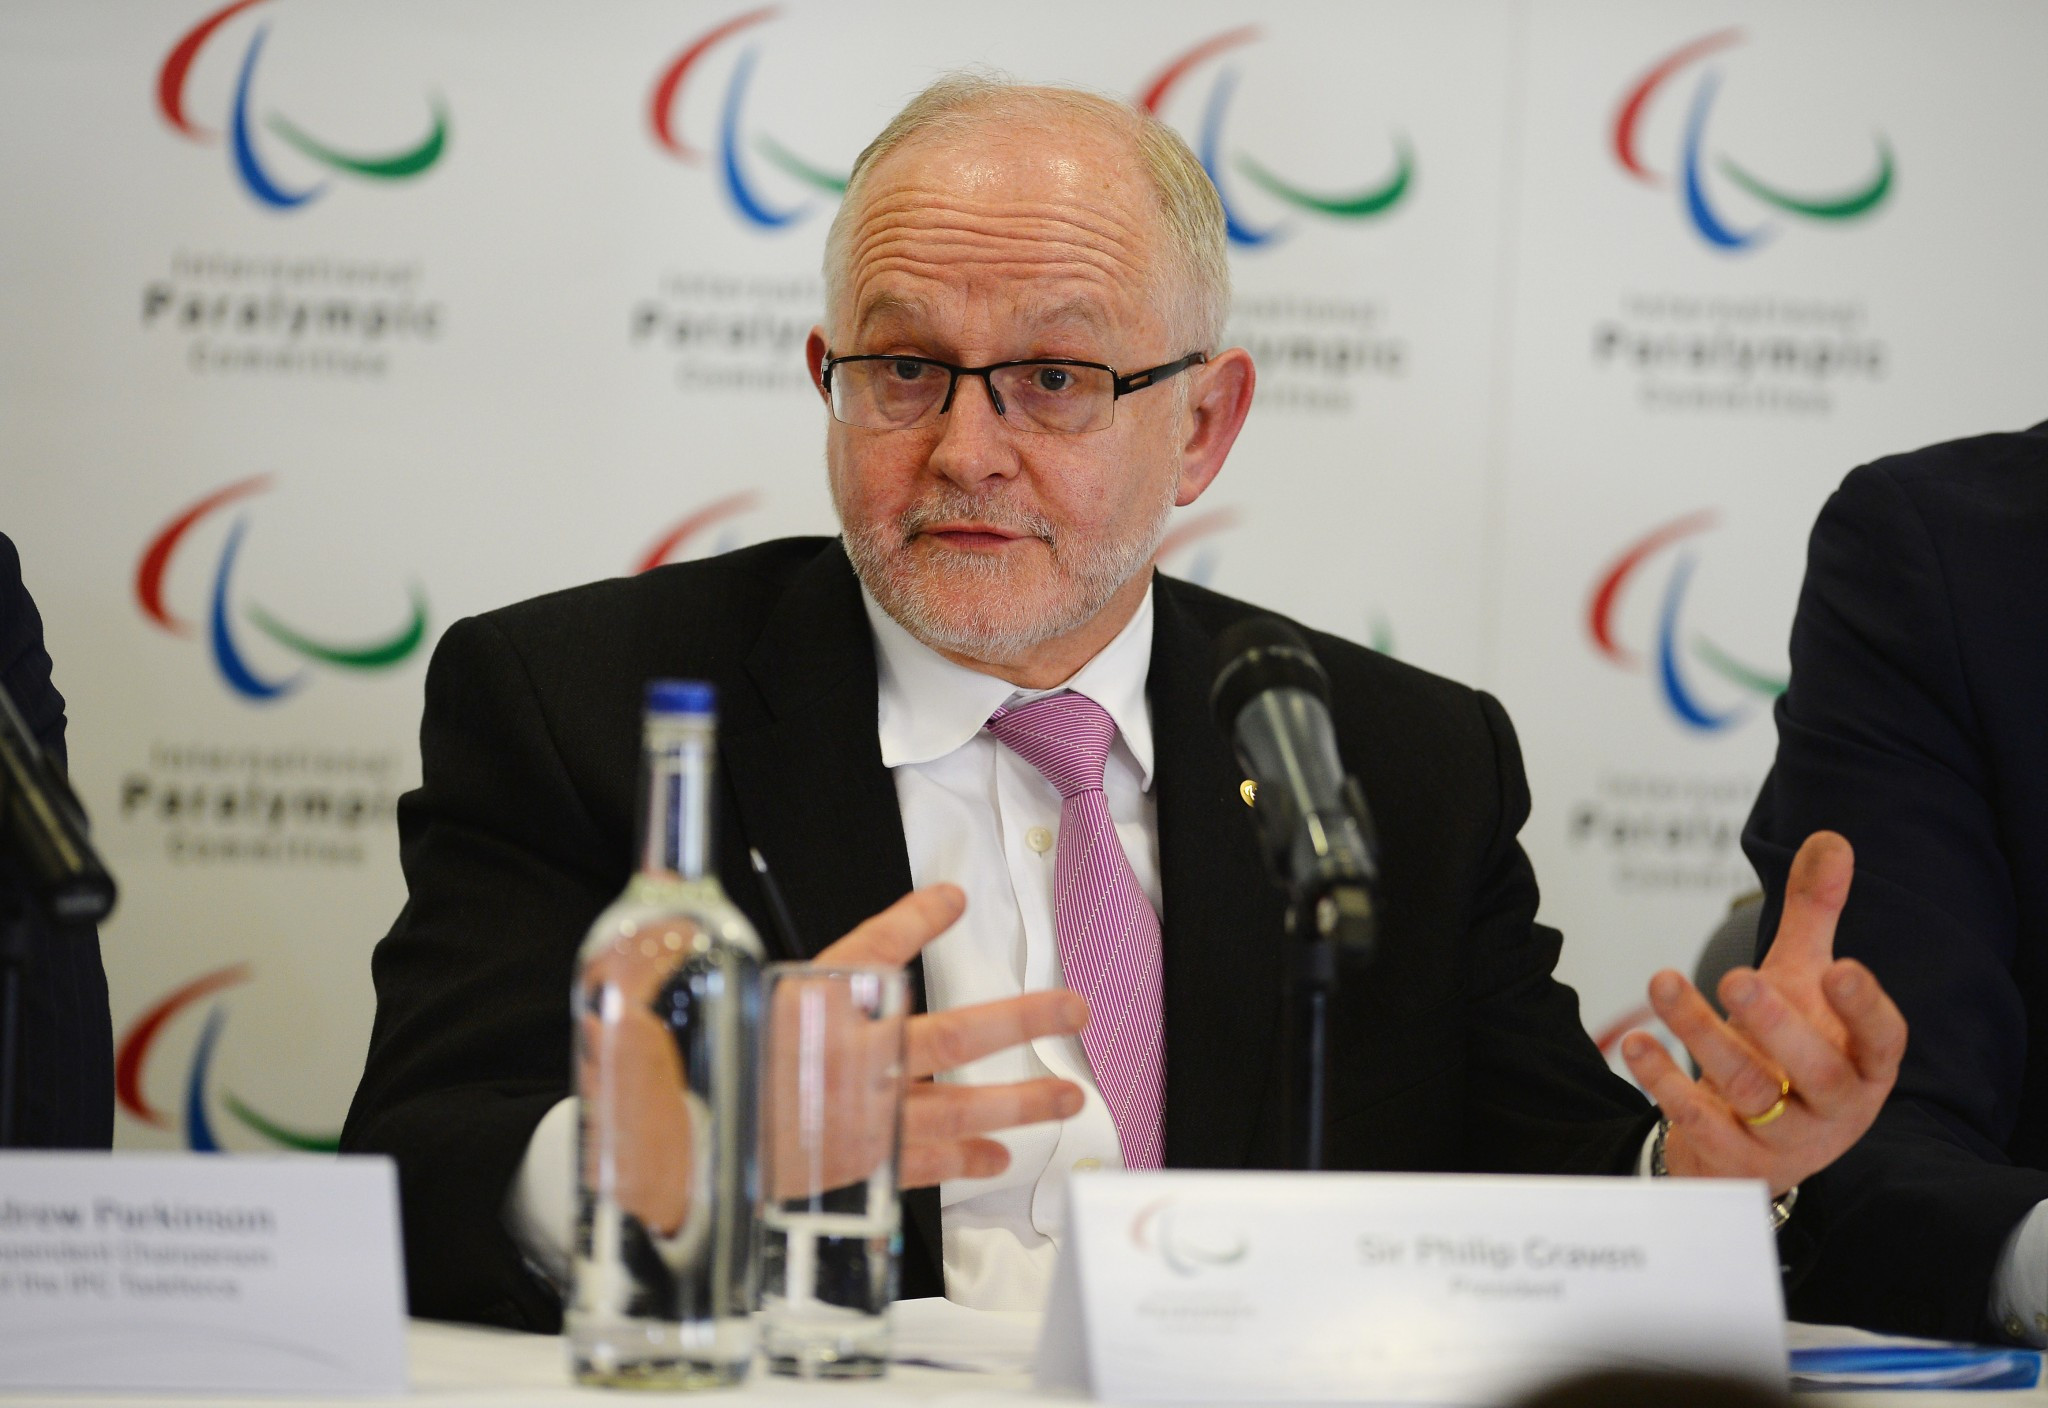 John Petersson is vying to replace Sir Philip Craven as President of the IPC ©Getty Images